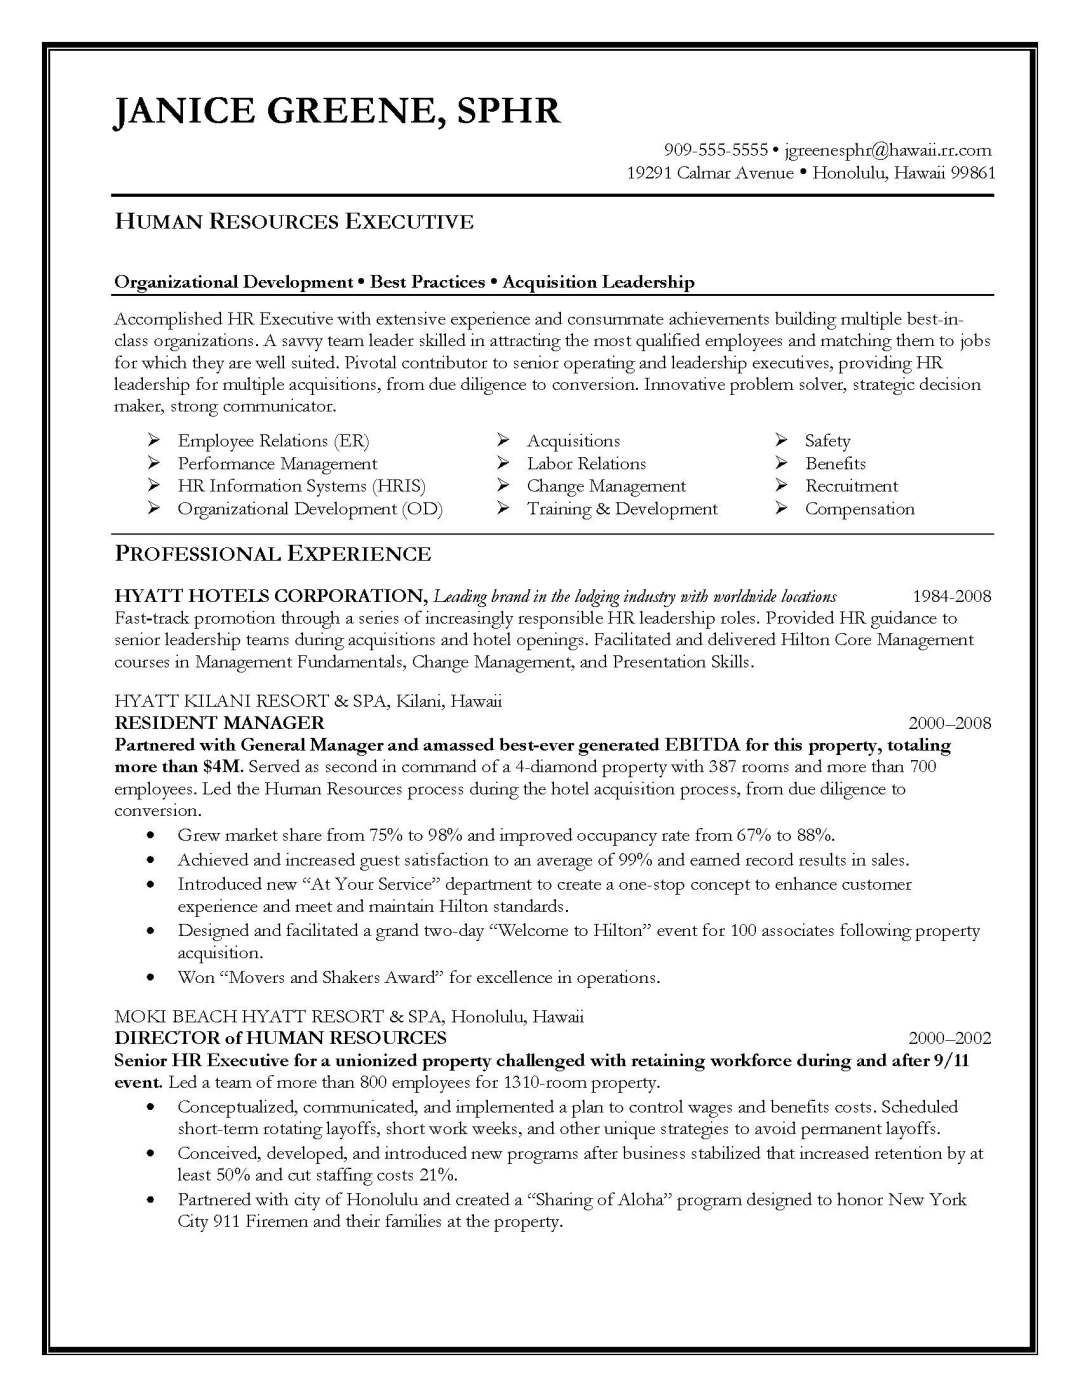 Resume Writing Resources Resume Samples Elite Resume Writing